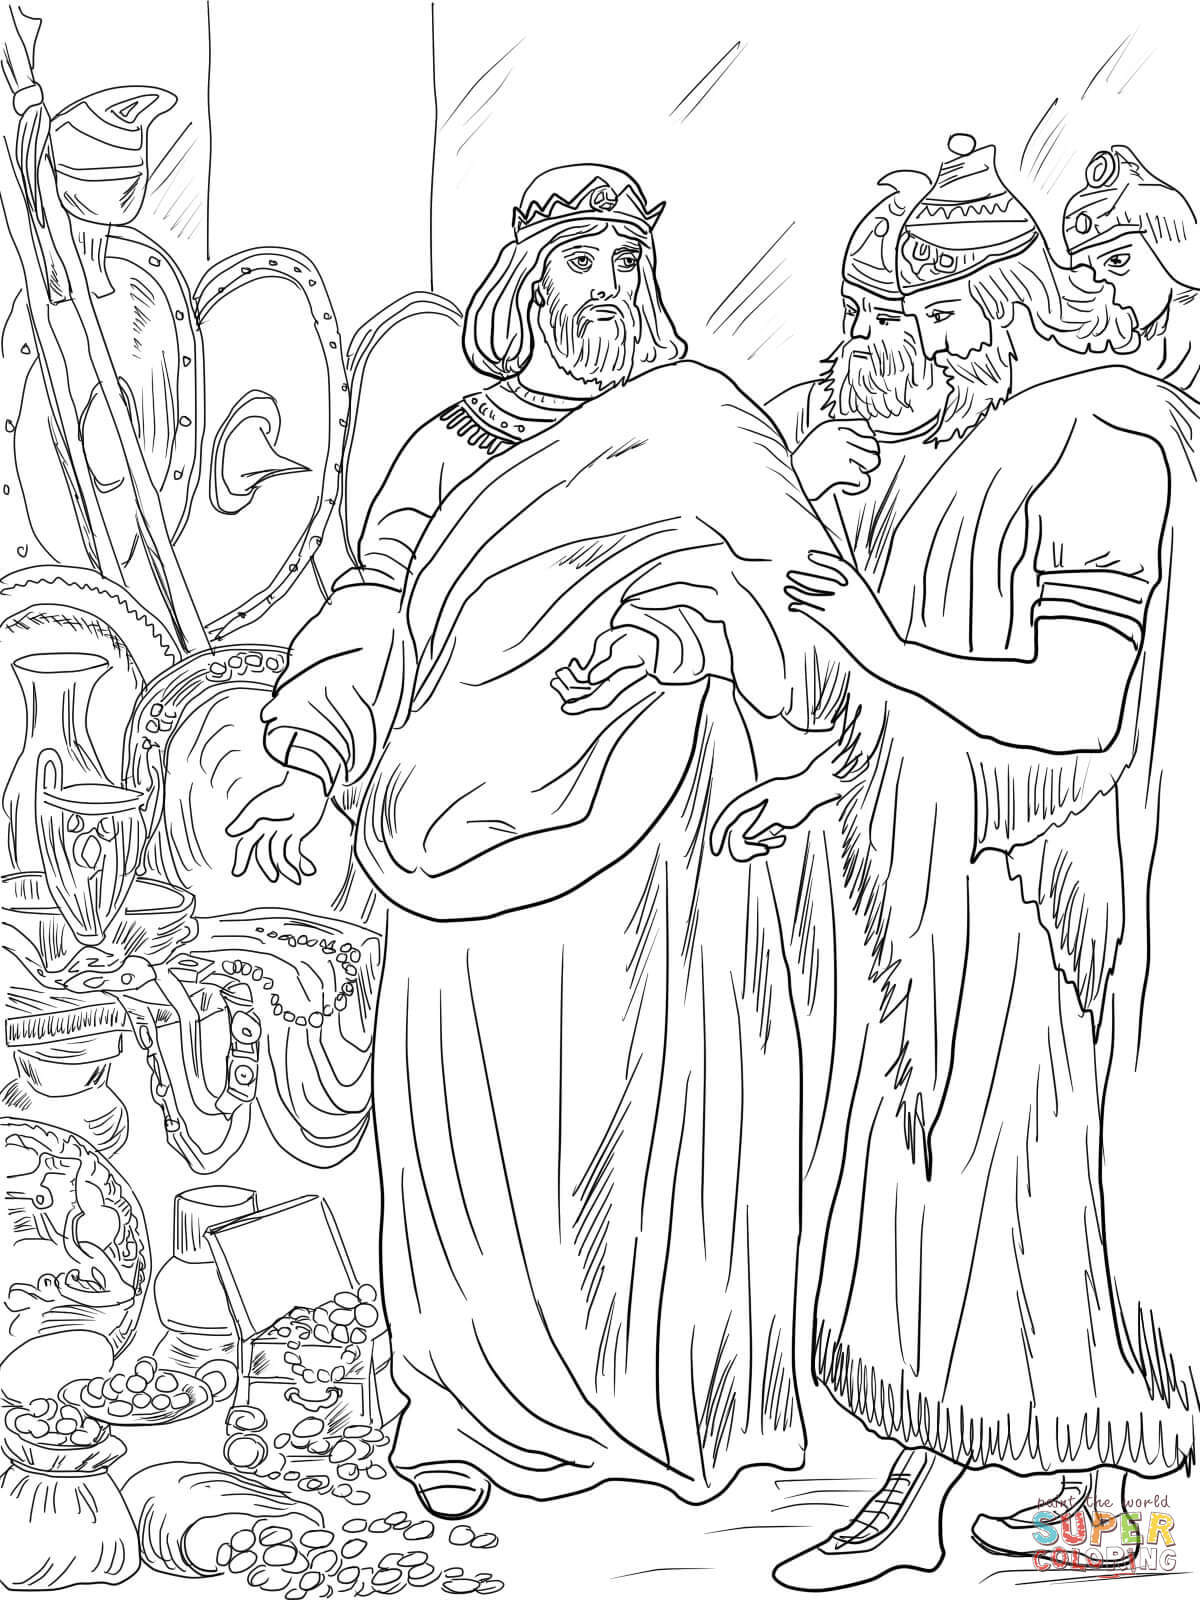 Biblical Hezekiah Sheets Coloring Pages